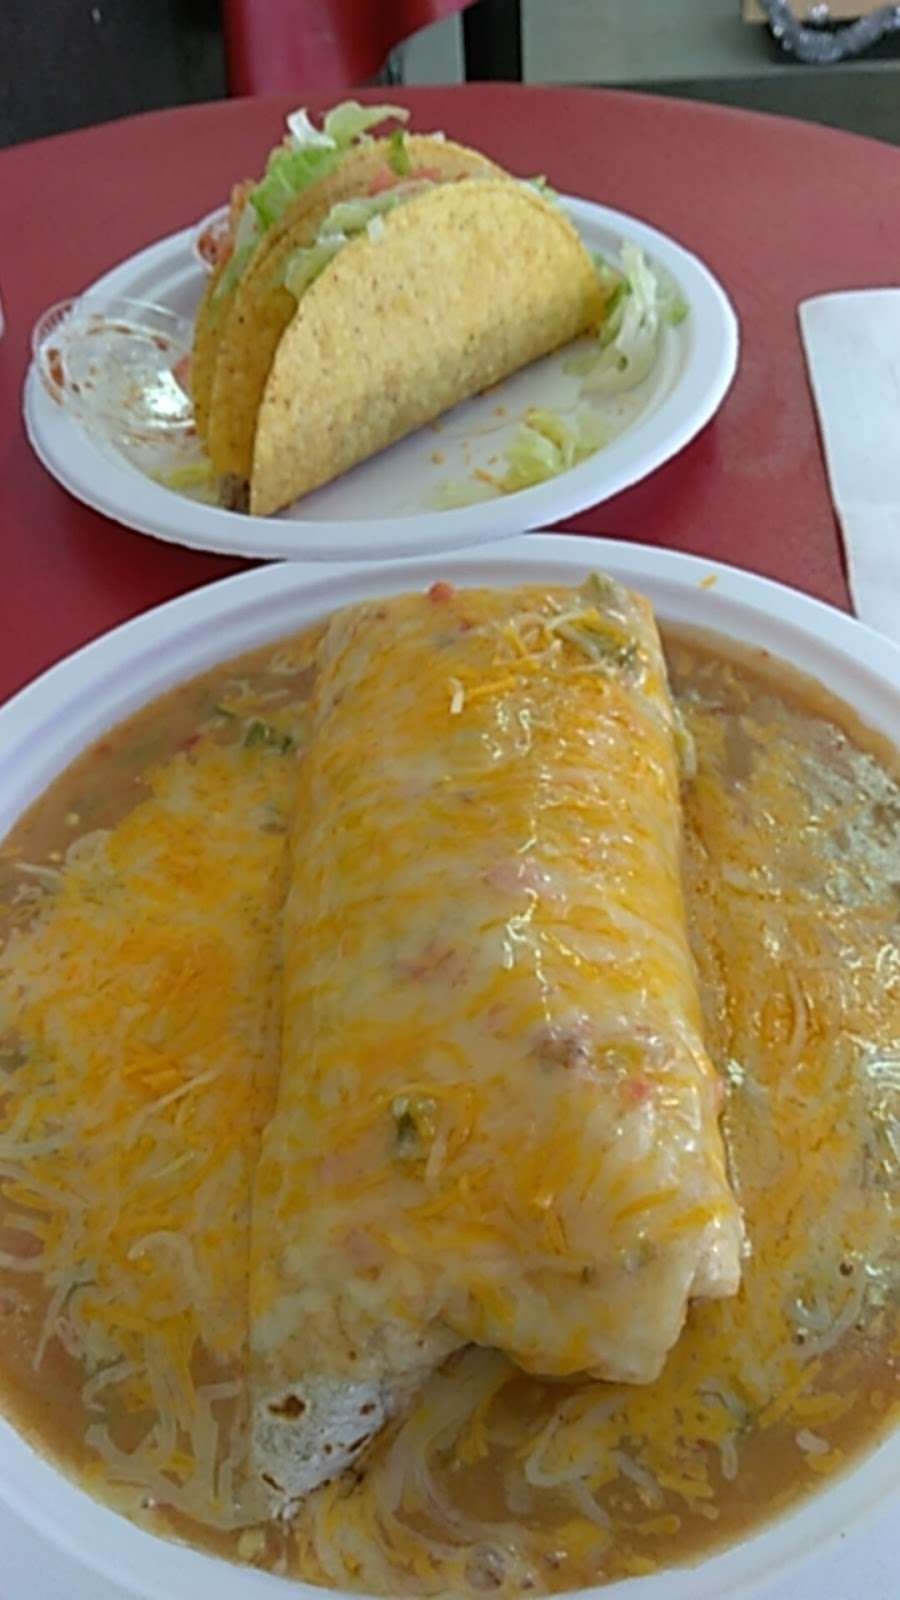 Big Mammas Burritos - restaurant  | Photo 1 of 10 | Address: 7790 Federal Blvd, Westminster, CO 80030, USA | Phone: (303) 429-1885